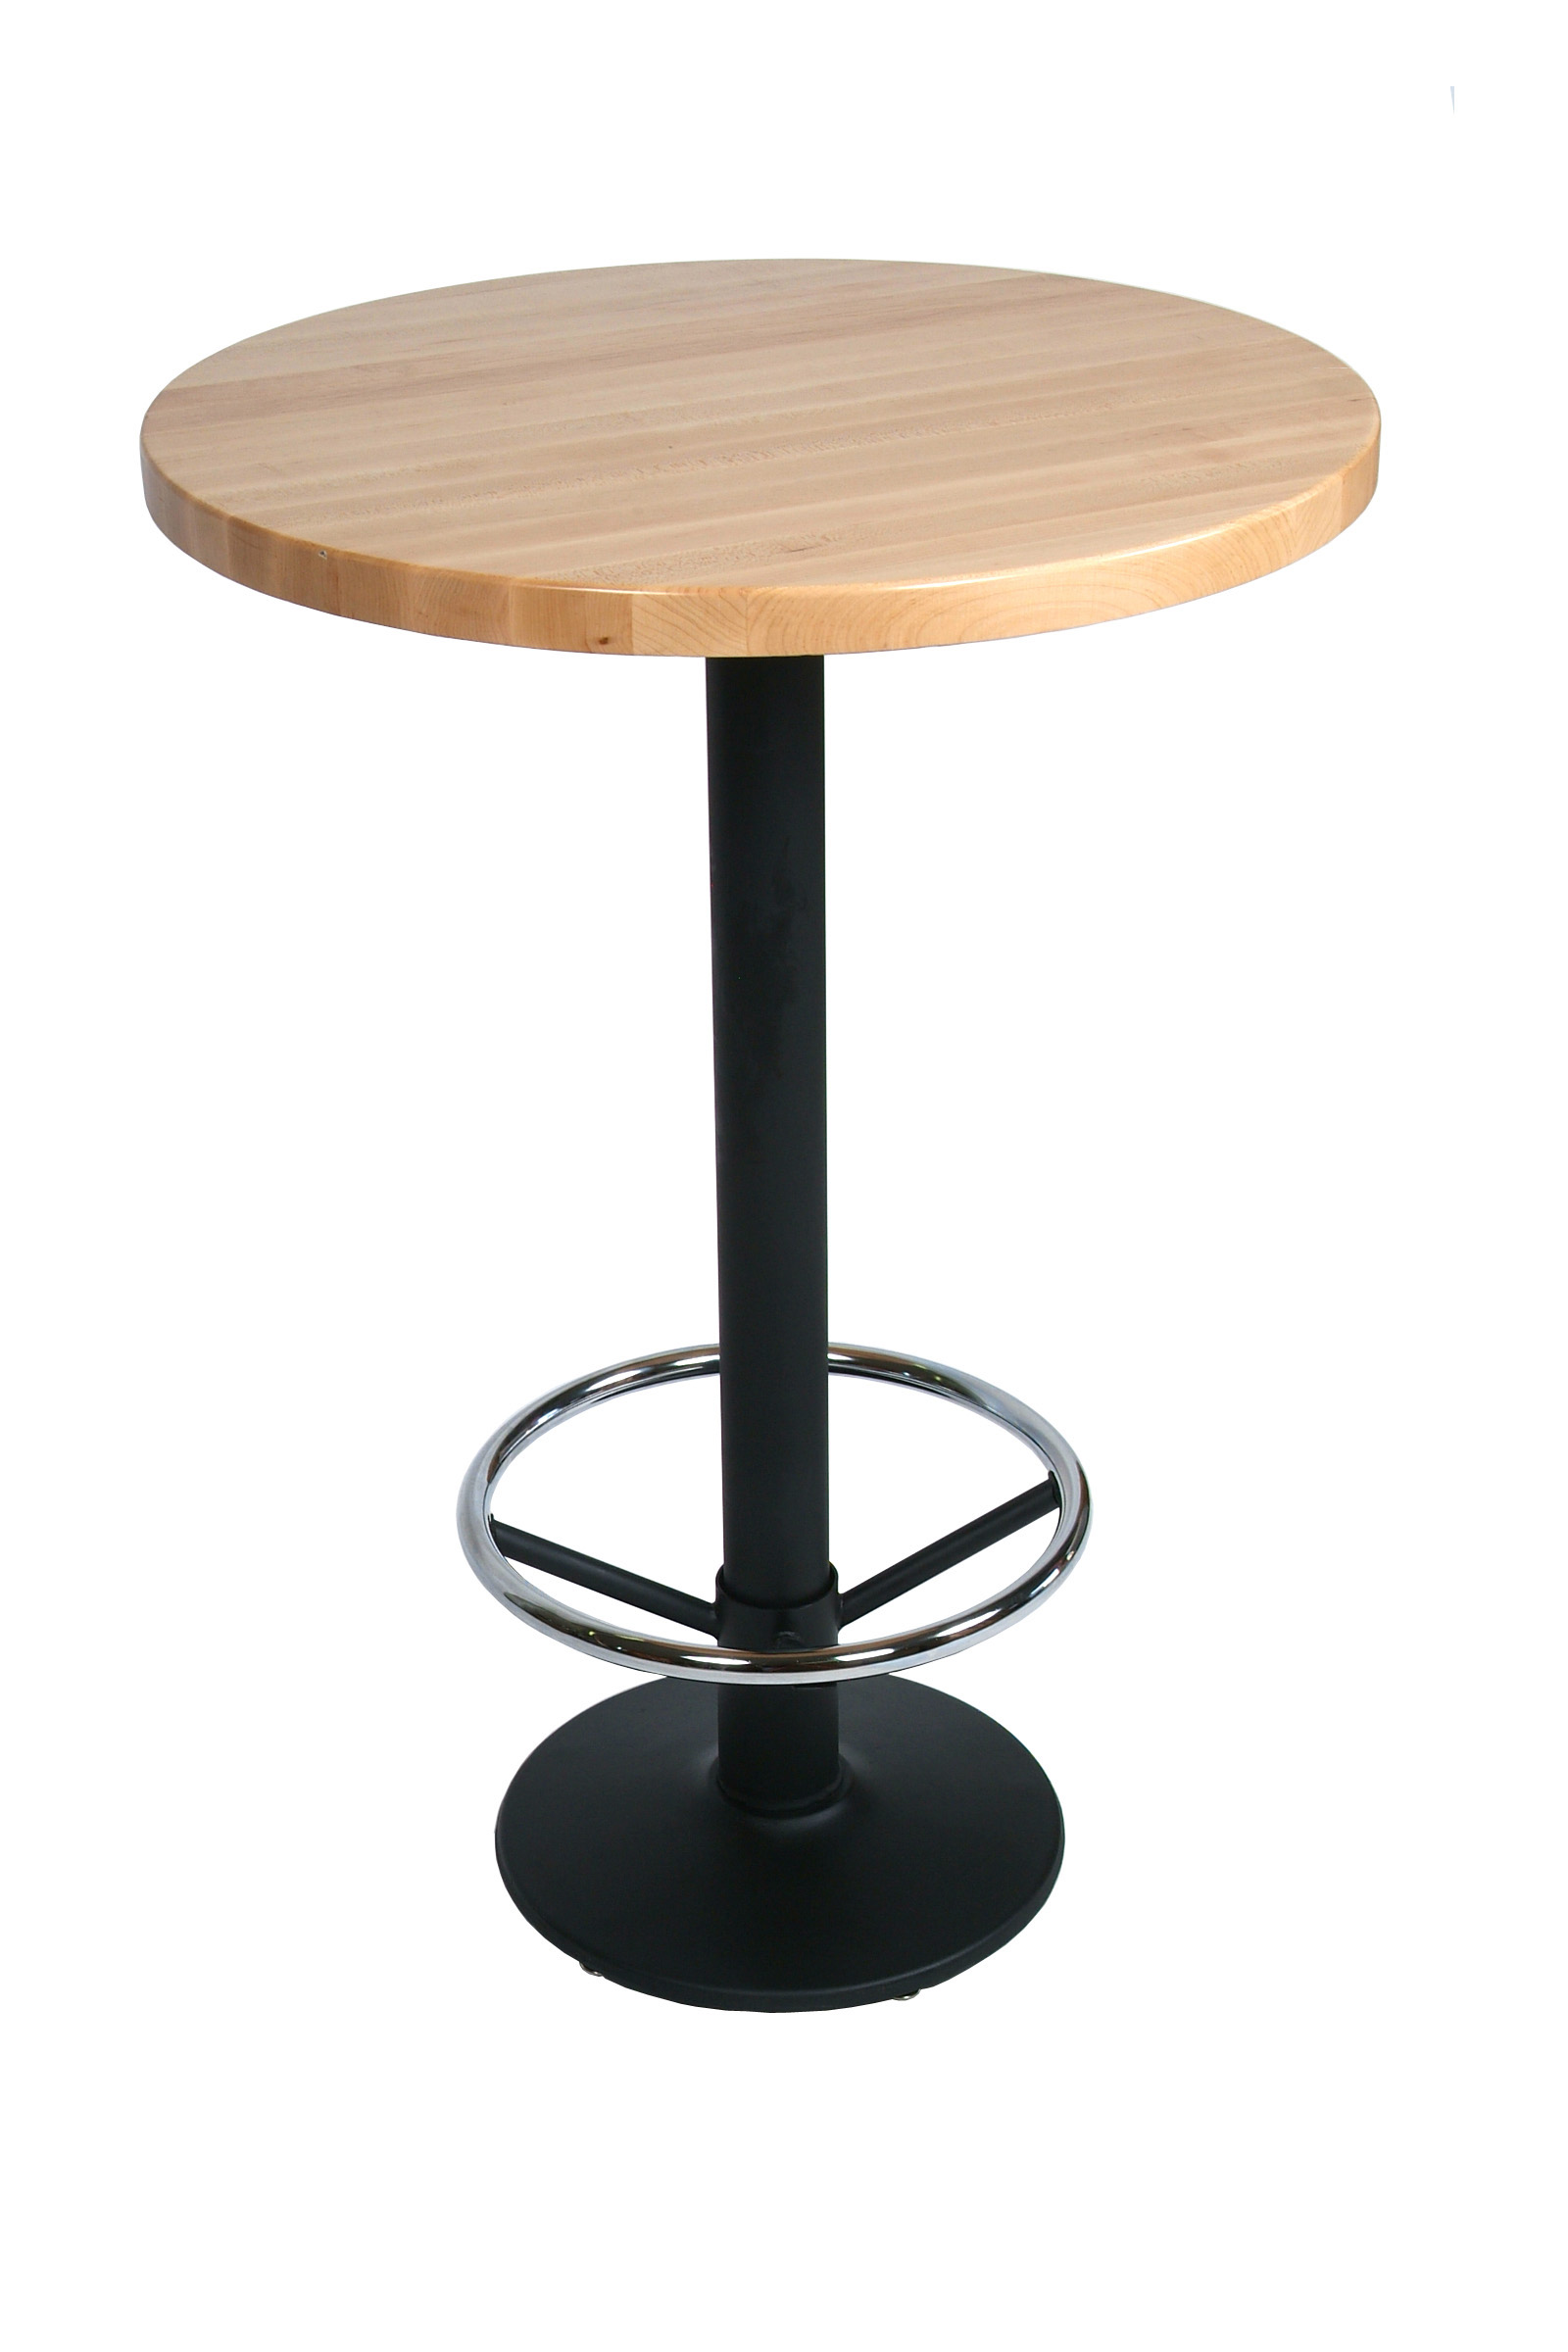 John Boos Maple Edge Grain Butcher Block Table Top on Metal Disc Base with Foot Rest